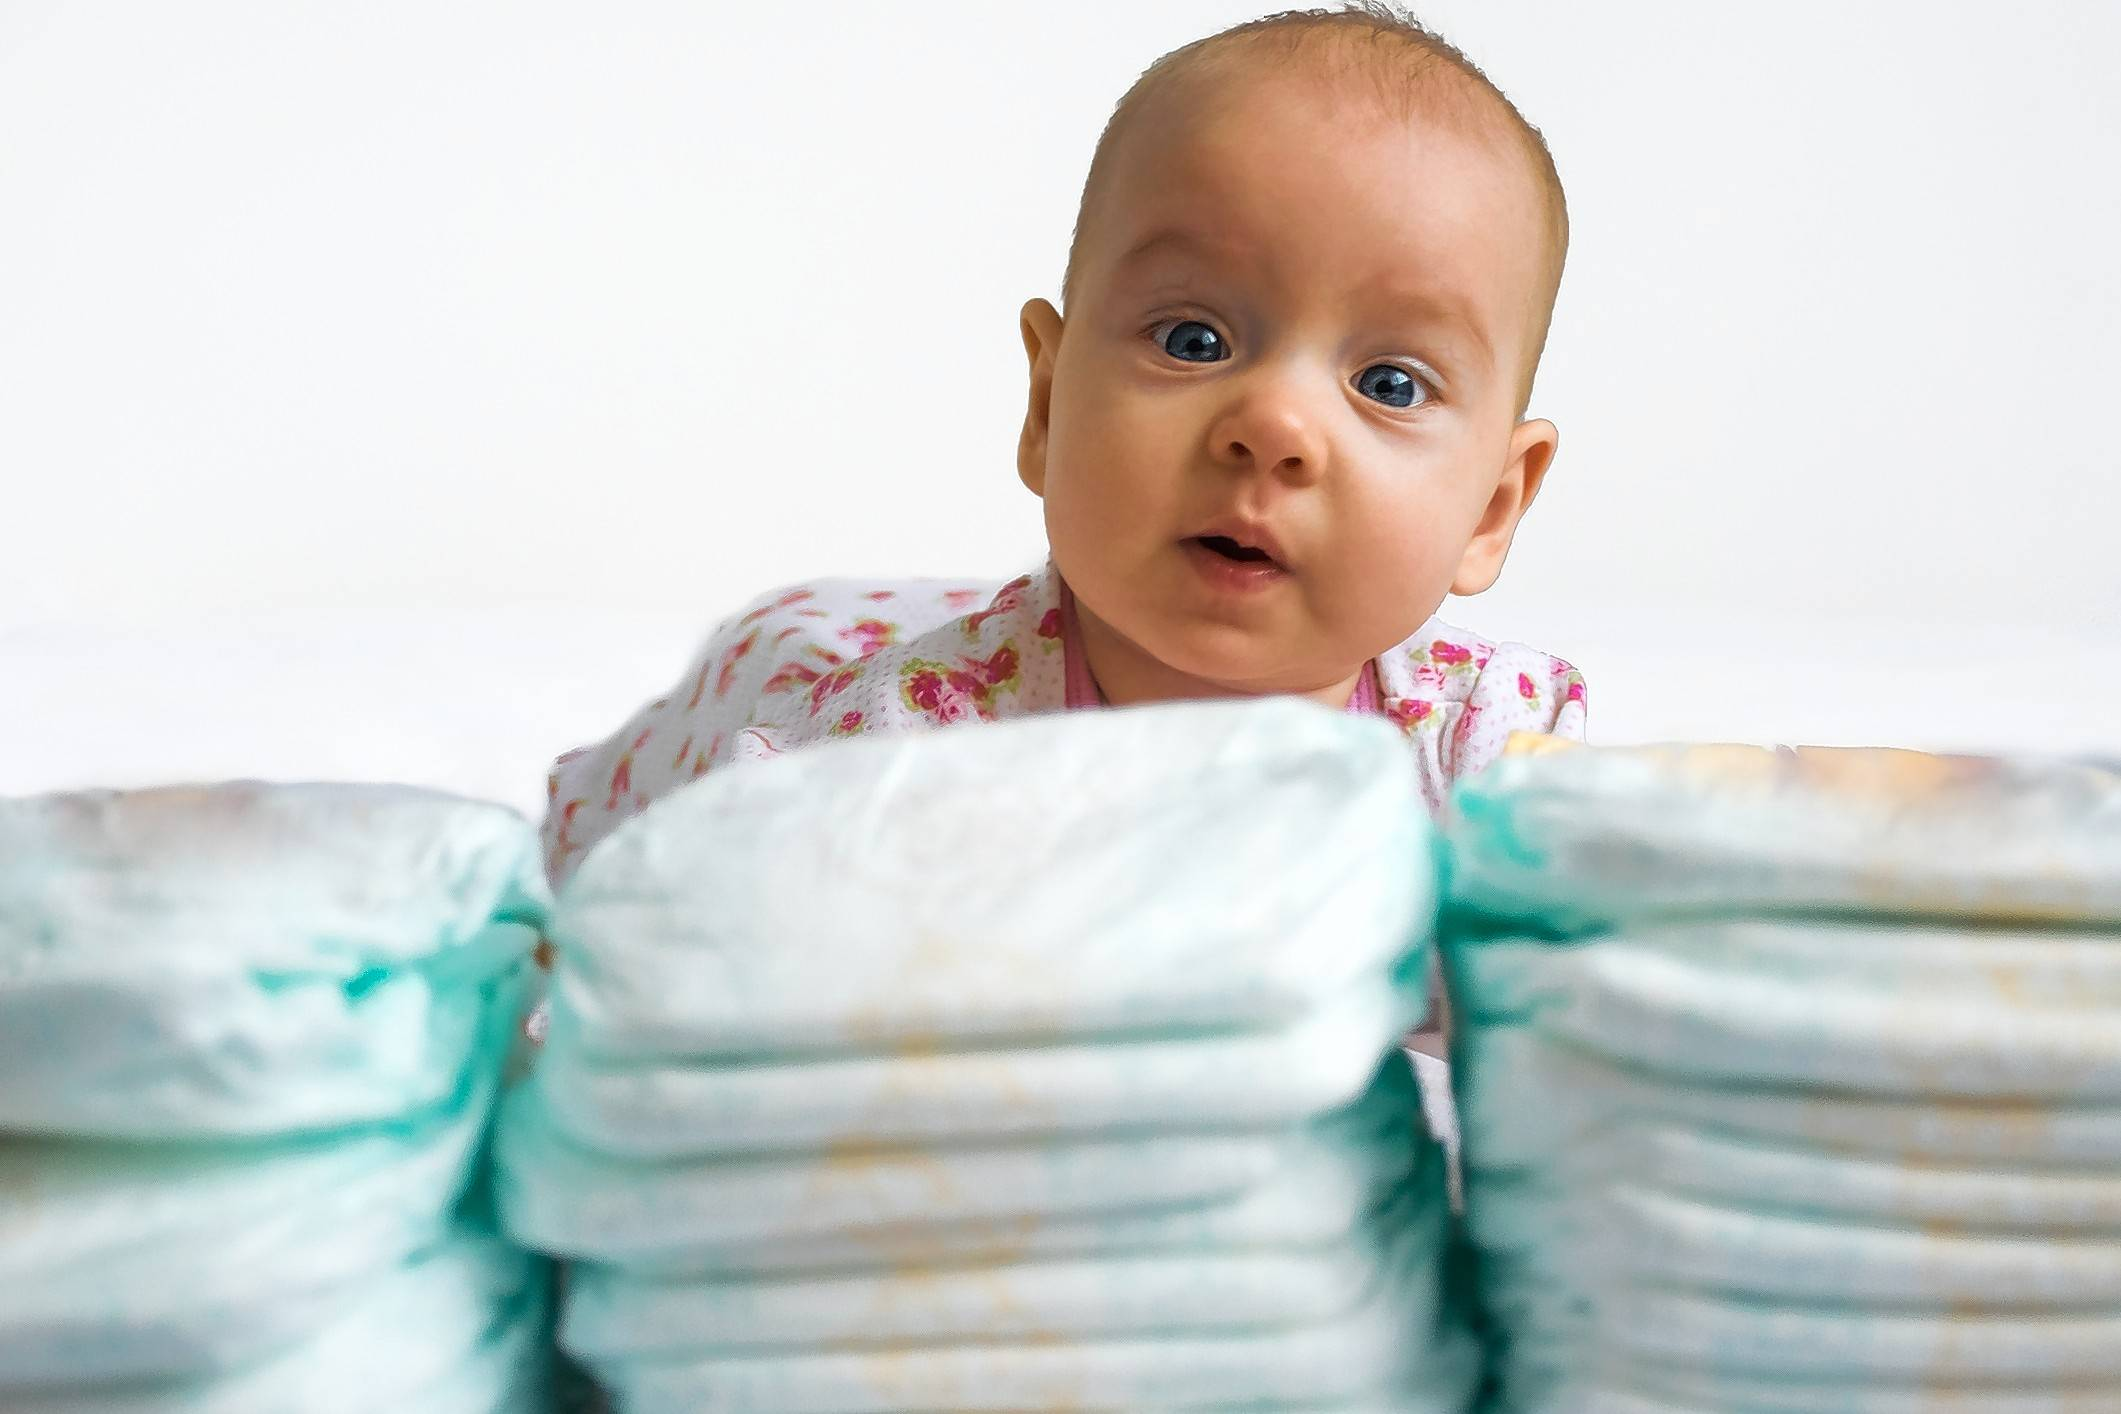 Lester: With state funds dwindling, a diaper ministry steps up